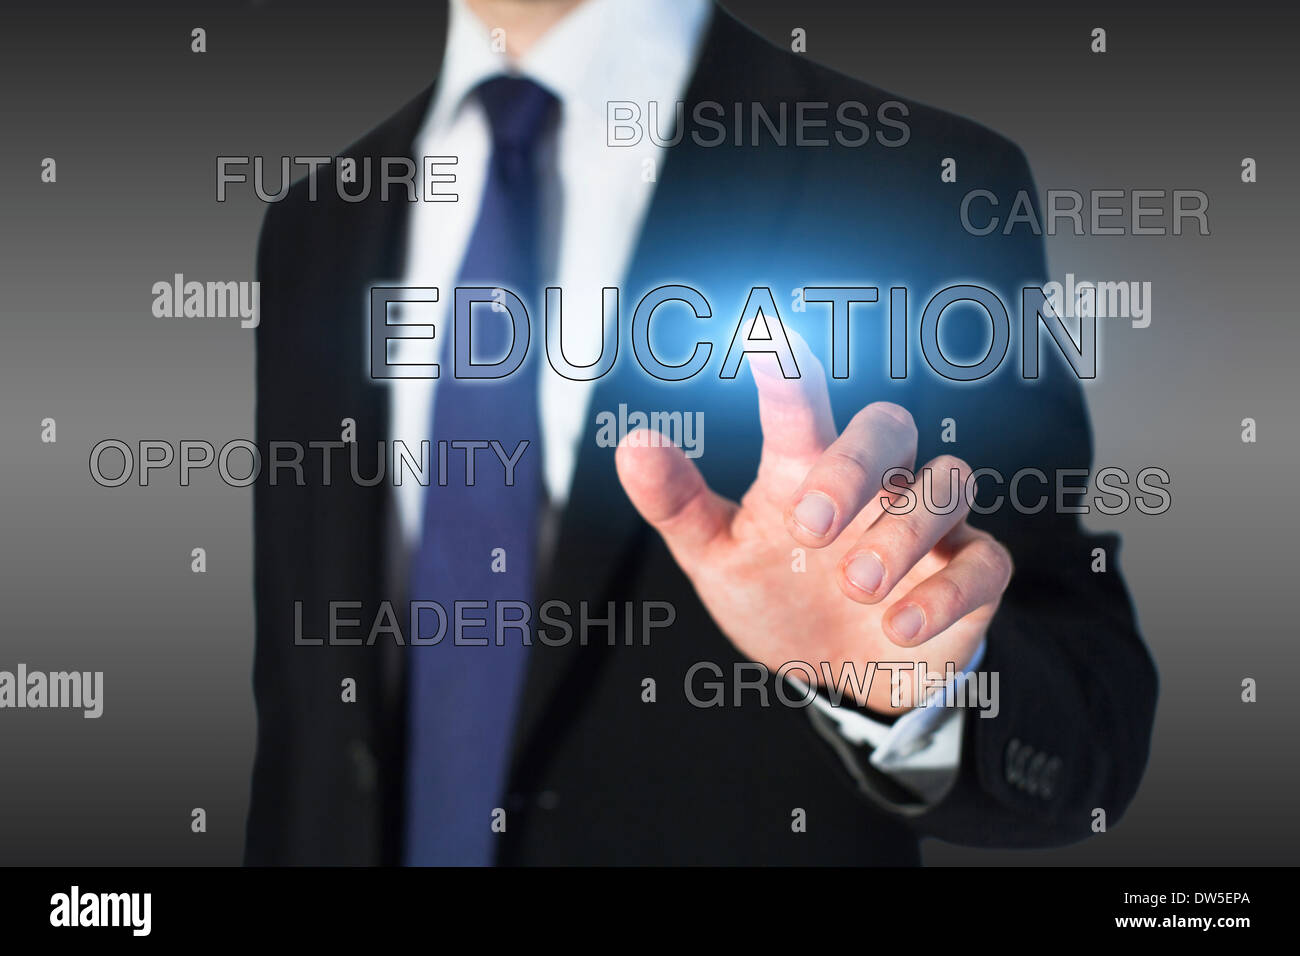 business education concept, professional growth - Stock Image